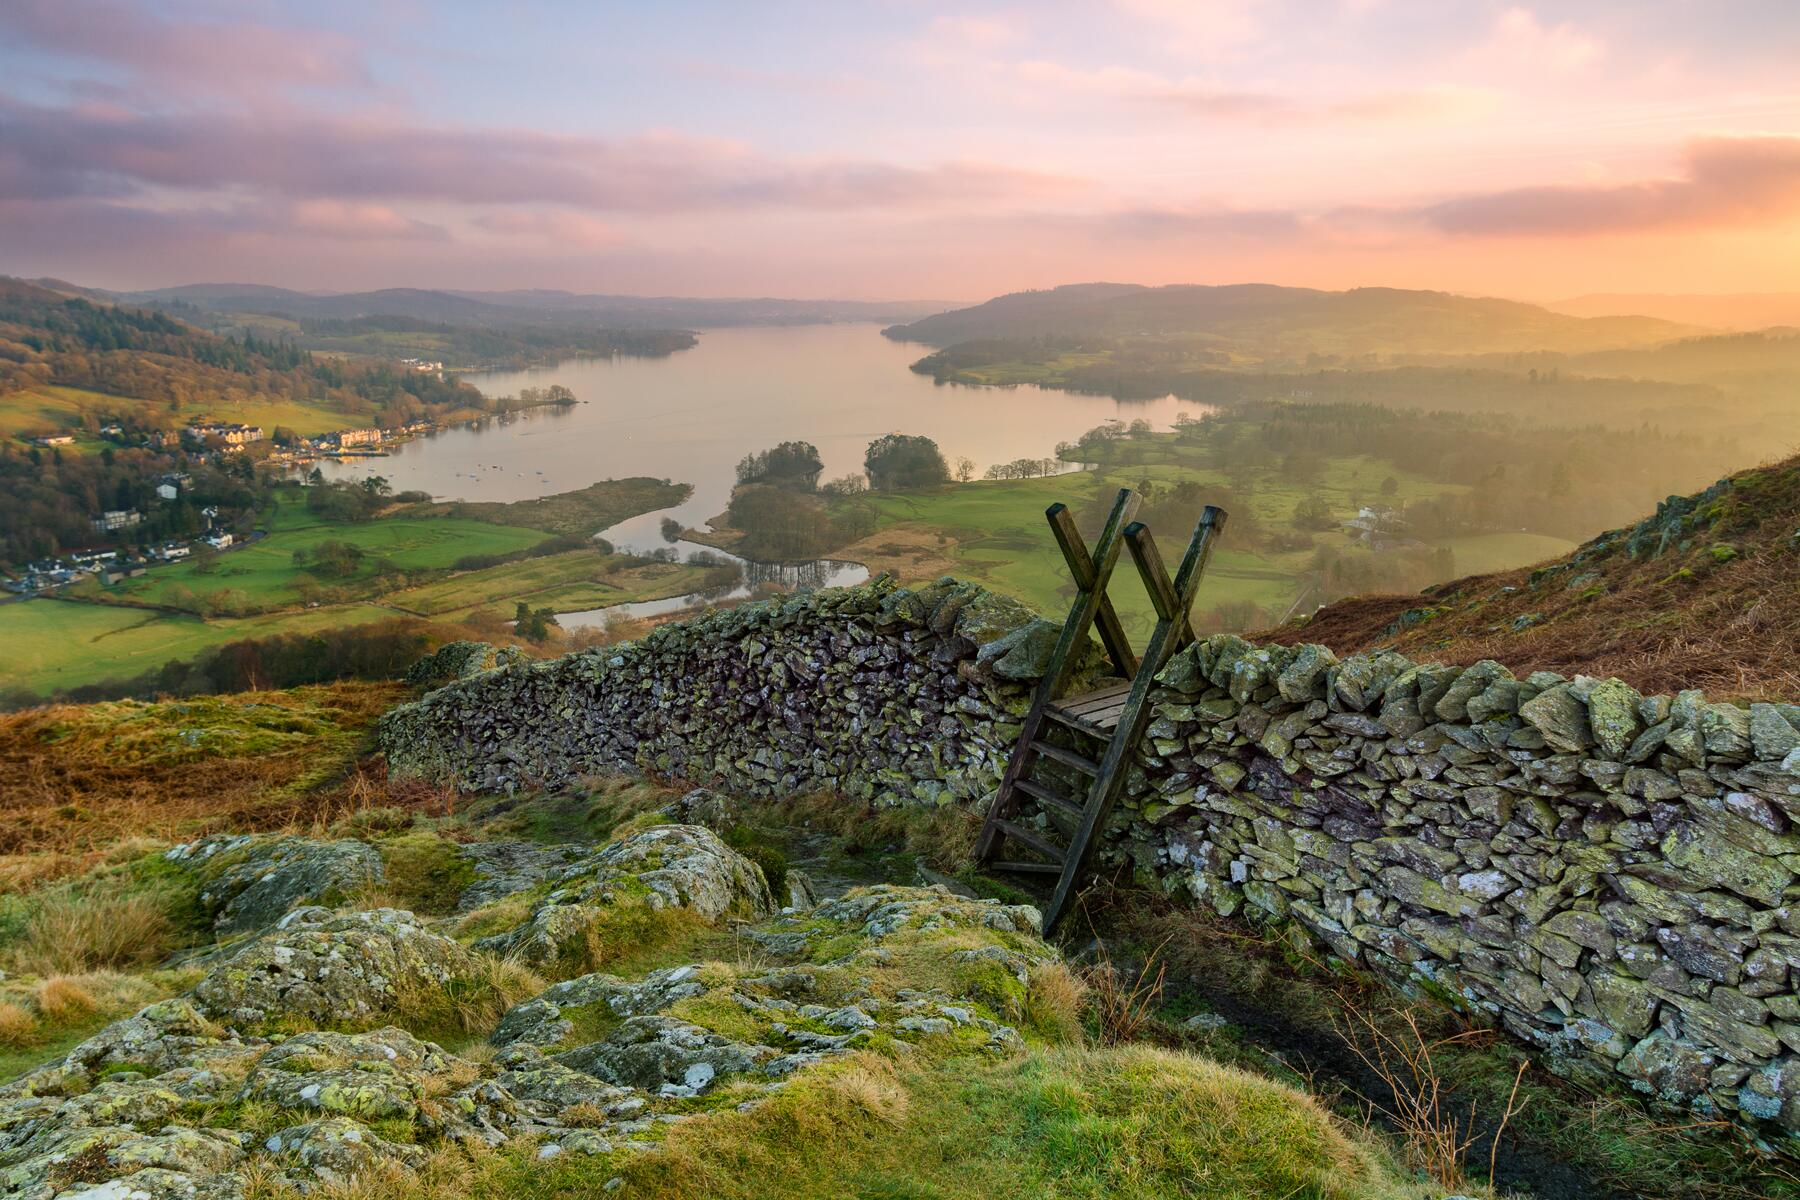 The Region That Inspired Some of England's Greatest Writers Was Also an Early Tourist Attraction